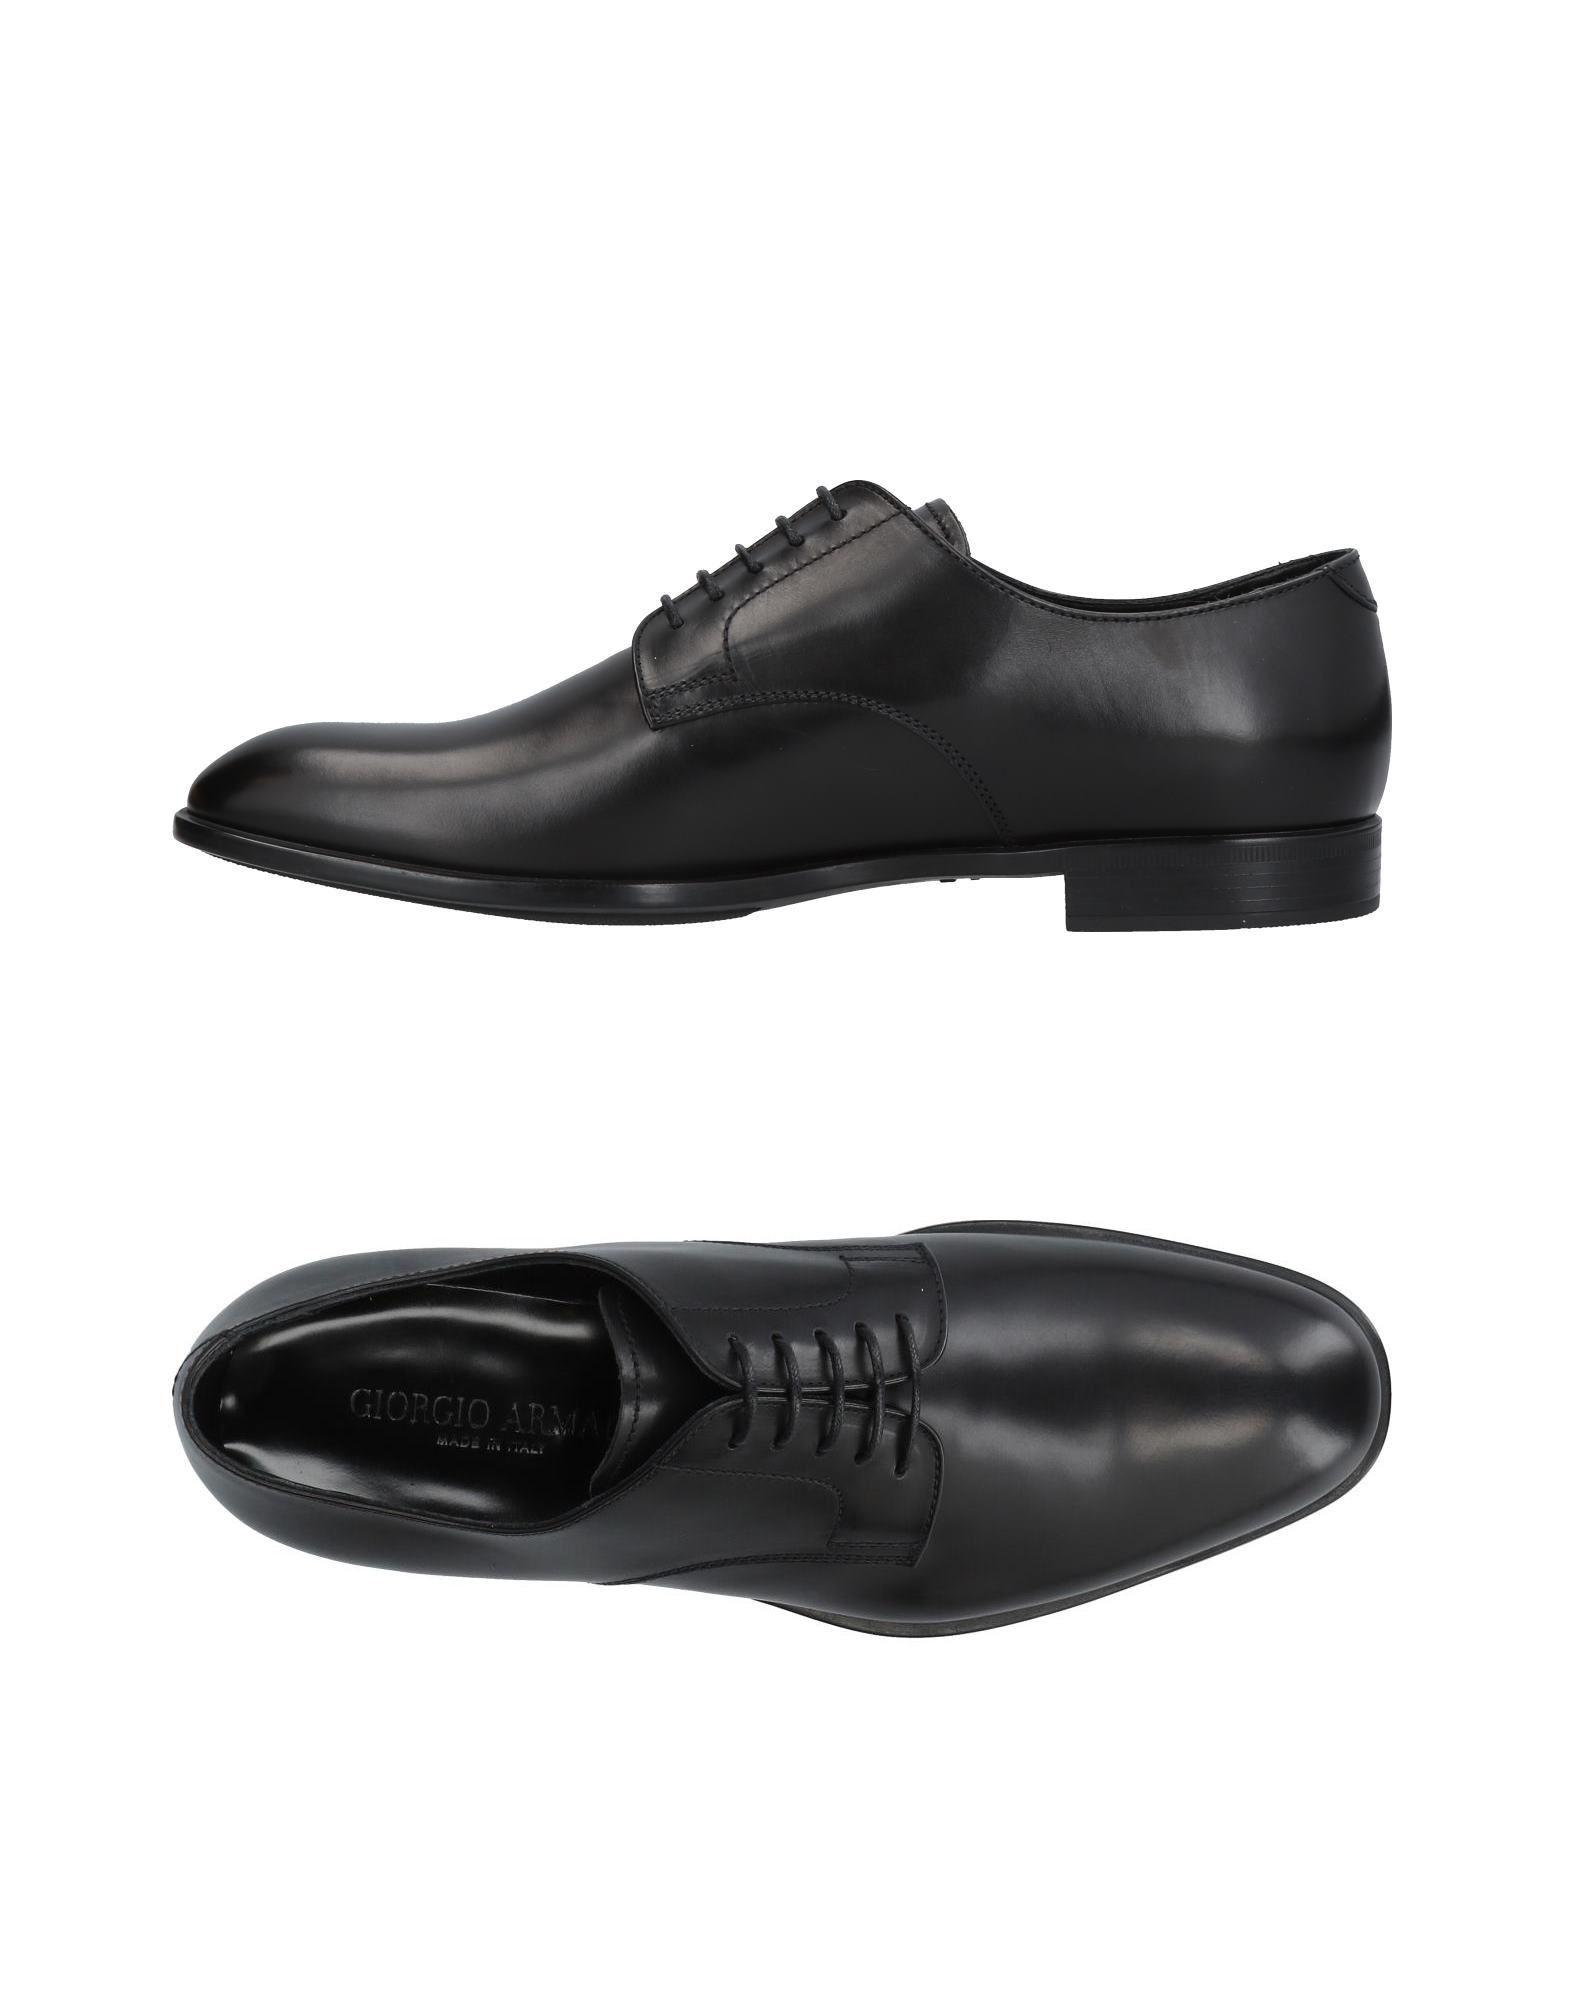 Giorgio Armani Lace-up Shoes In Black